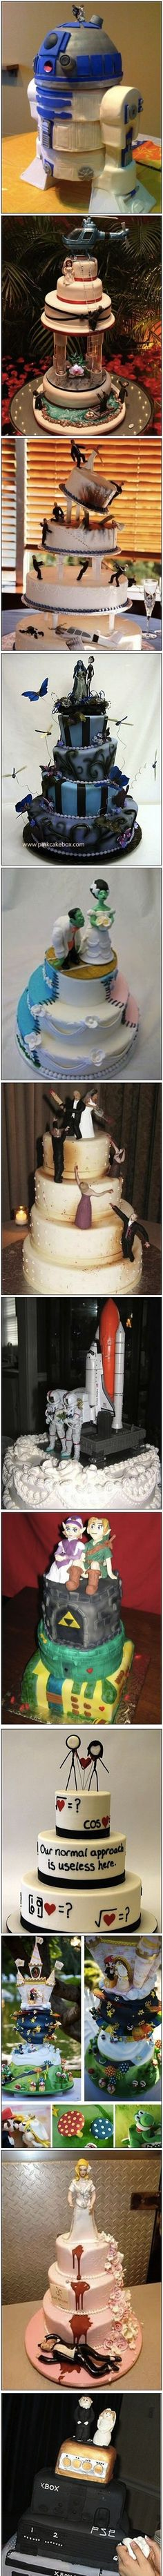 Incredible wedding cakes.